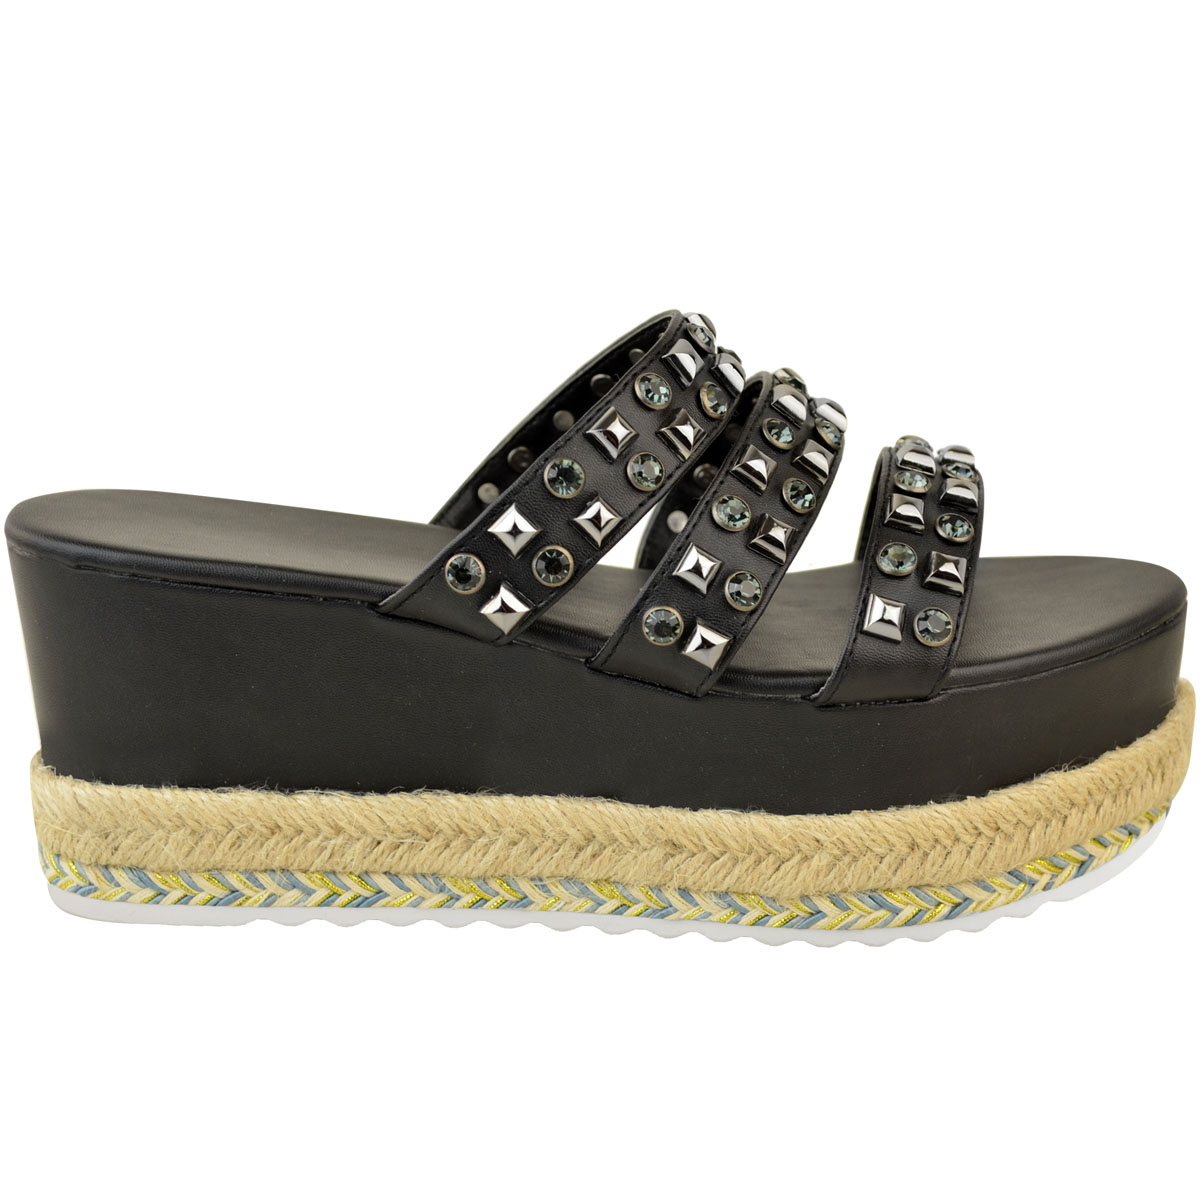 Womens-Ladies-Flatforms-Sandals-Espadrilles-Embellished-Stud-Jewel-Wedges-Size thumbnail 3